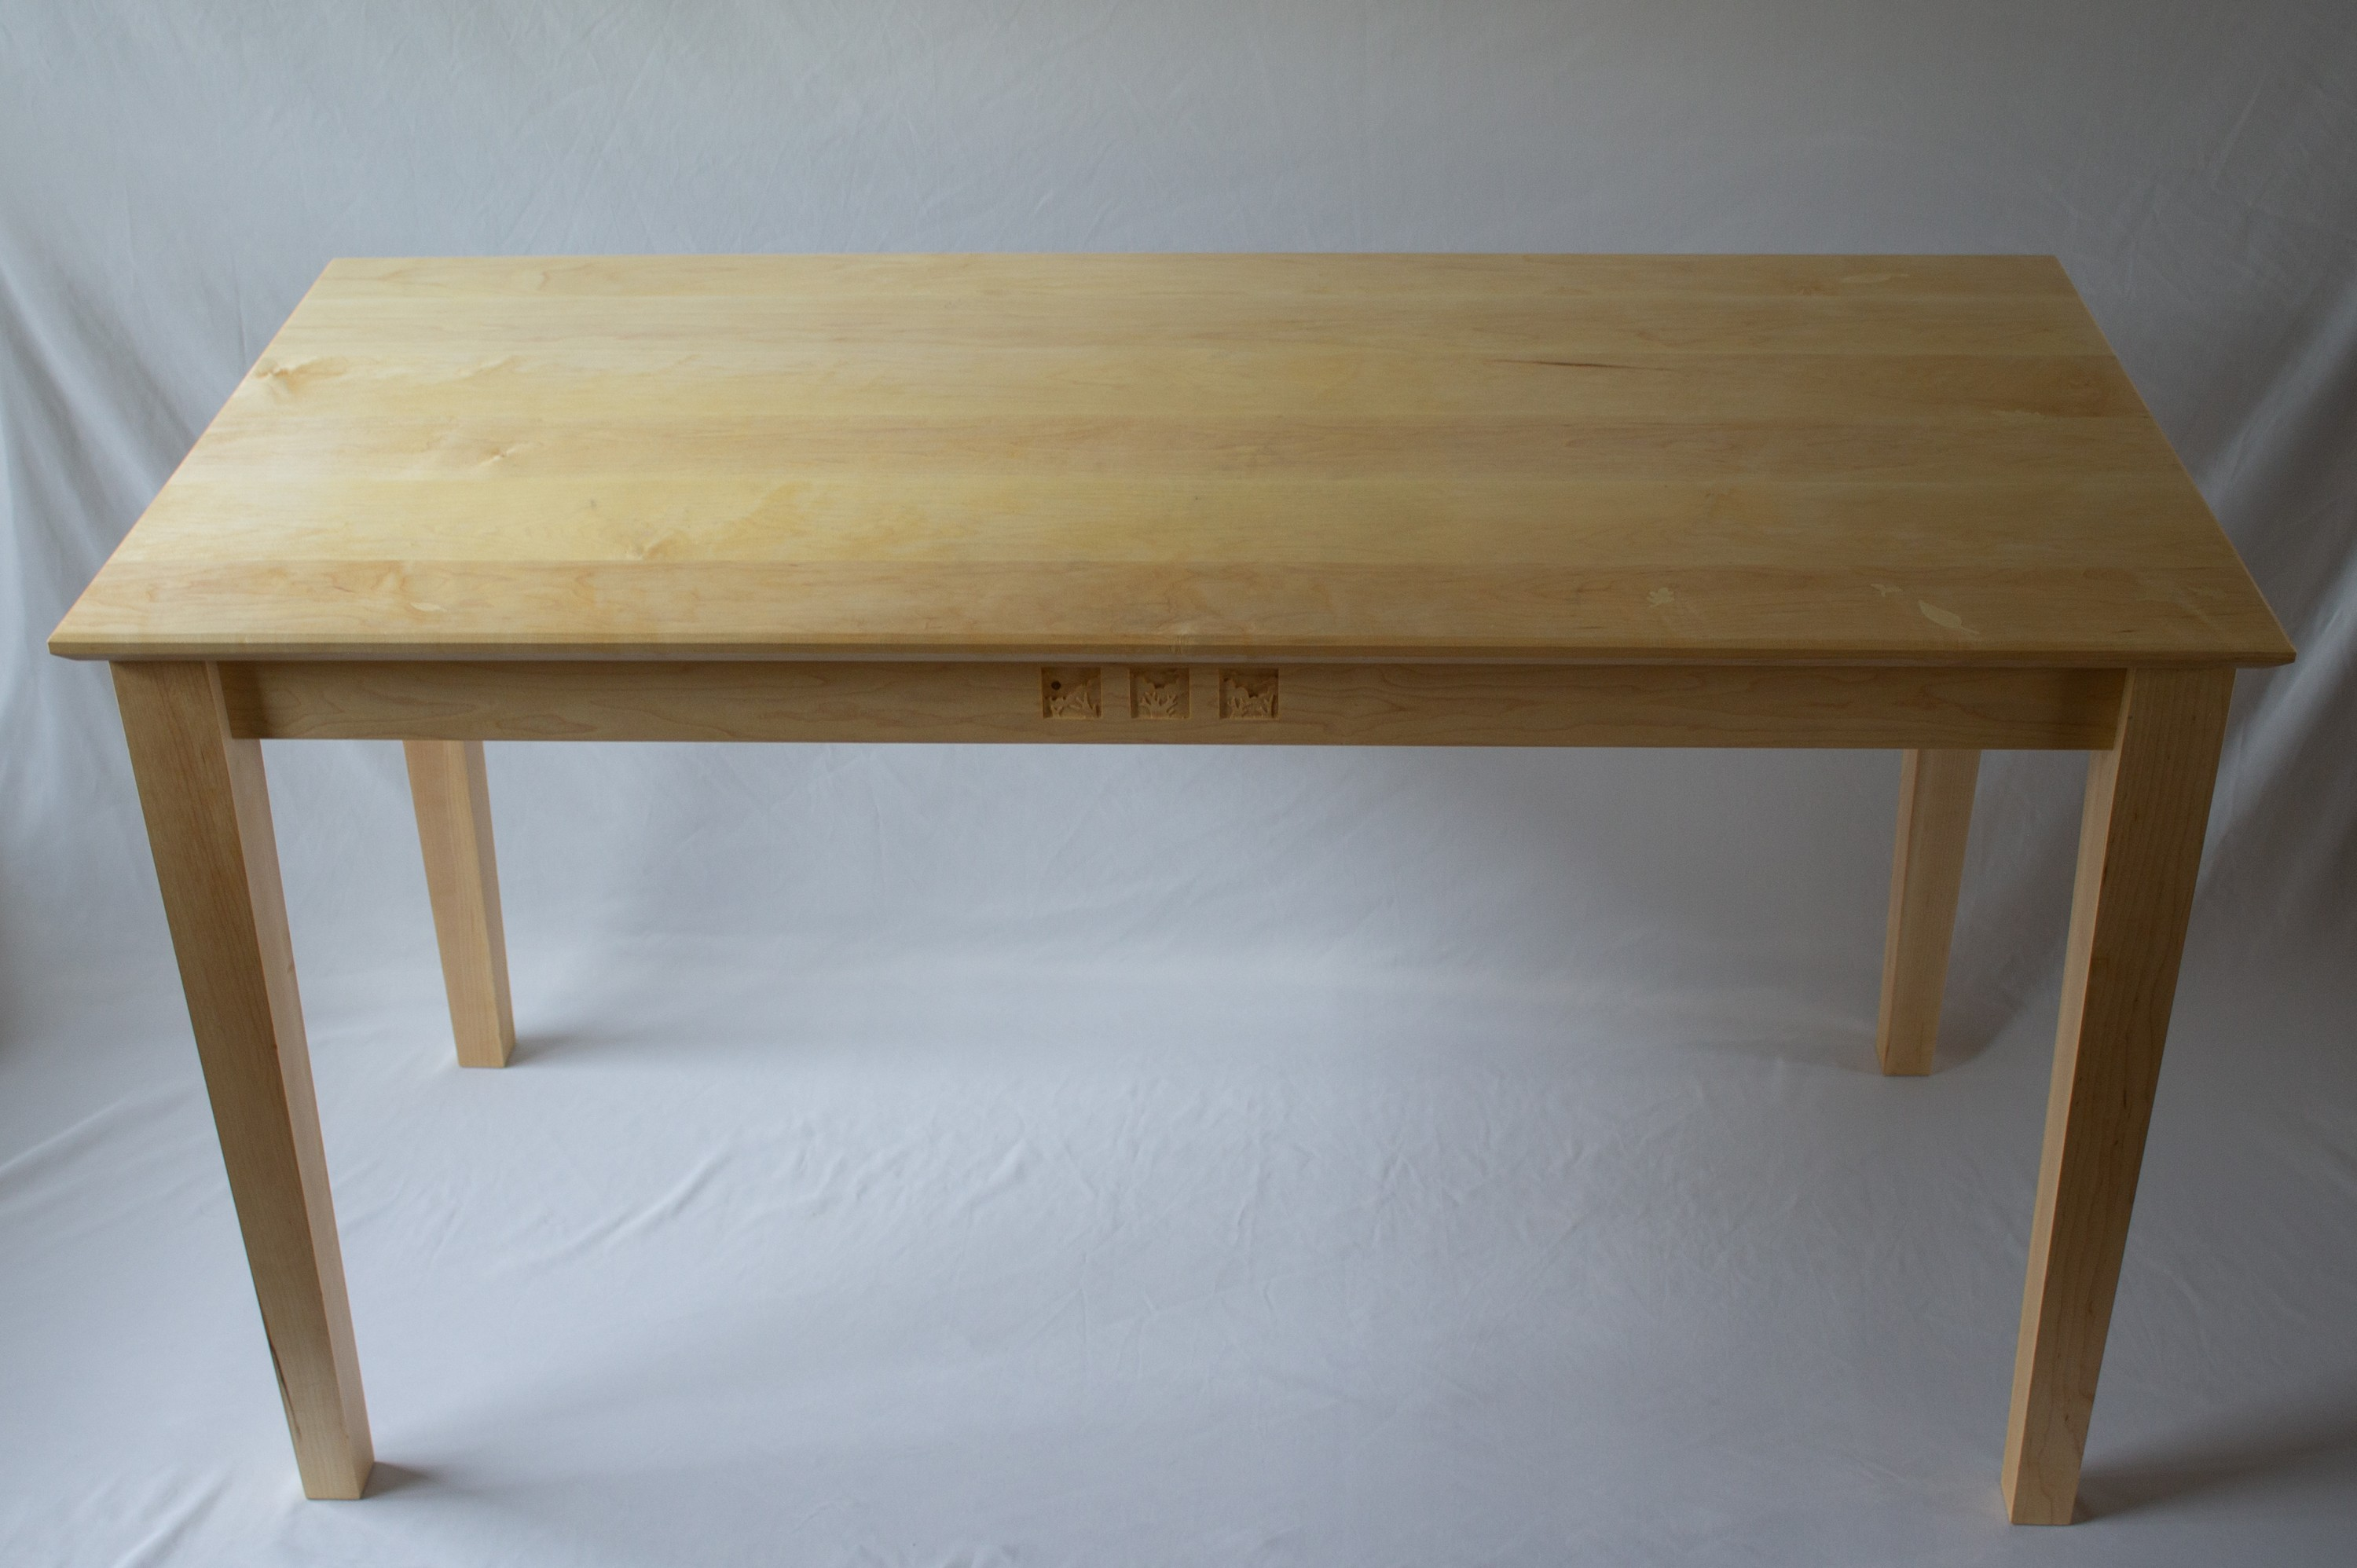 A writing desk made of hard maple. Blonde in color, the table stands on tapered legs and displays 3 scenic carvings on the front apron. The table-top has 13 maple wood leaf inlays and has chamfered edges.